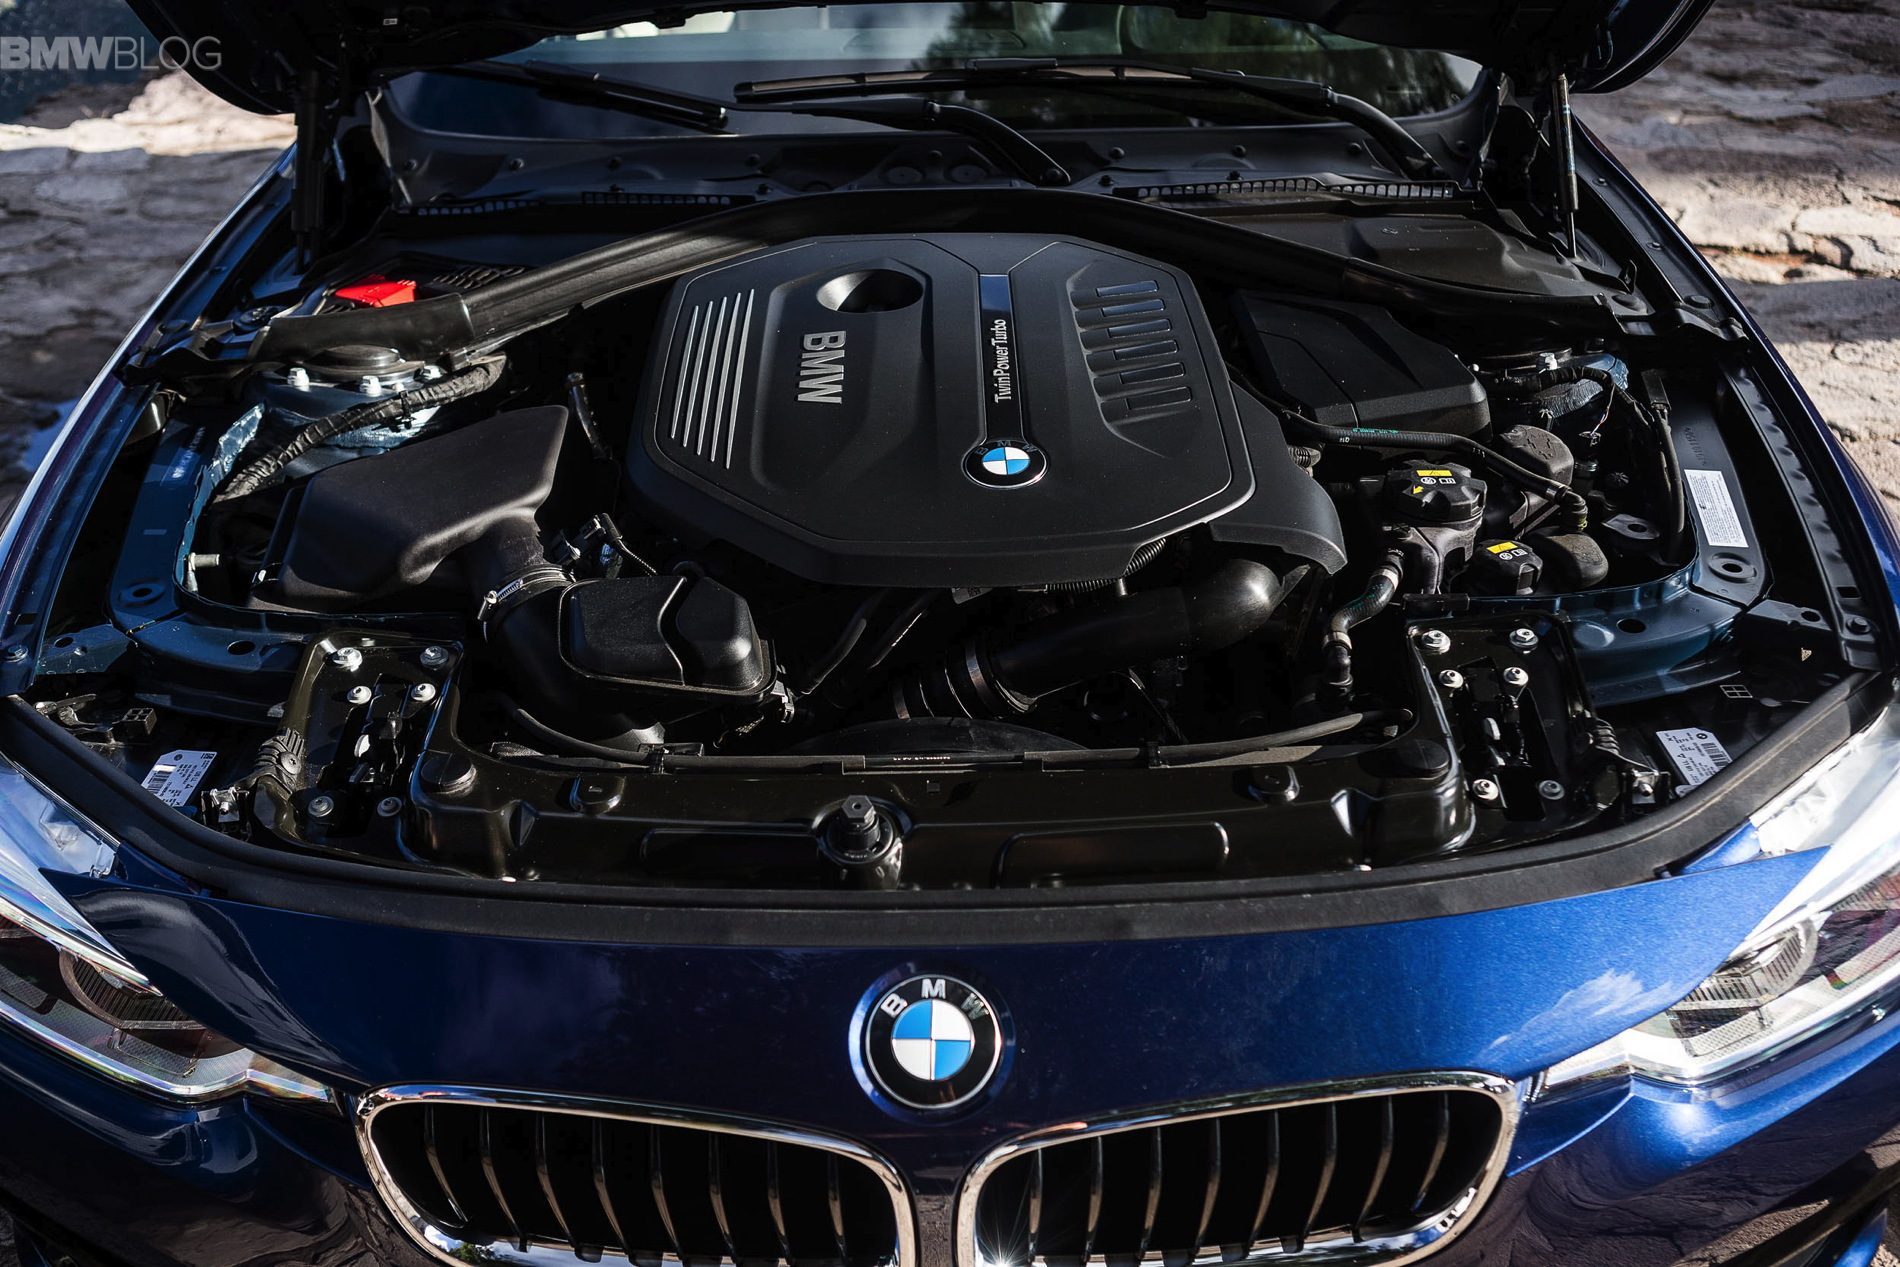 Bmw S B58 Engine Among Wards 10 Best Engines For 2016